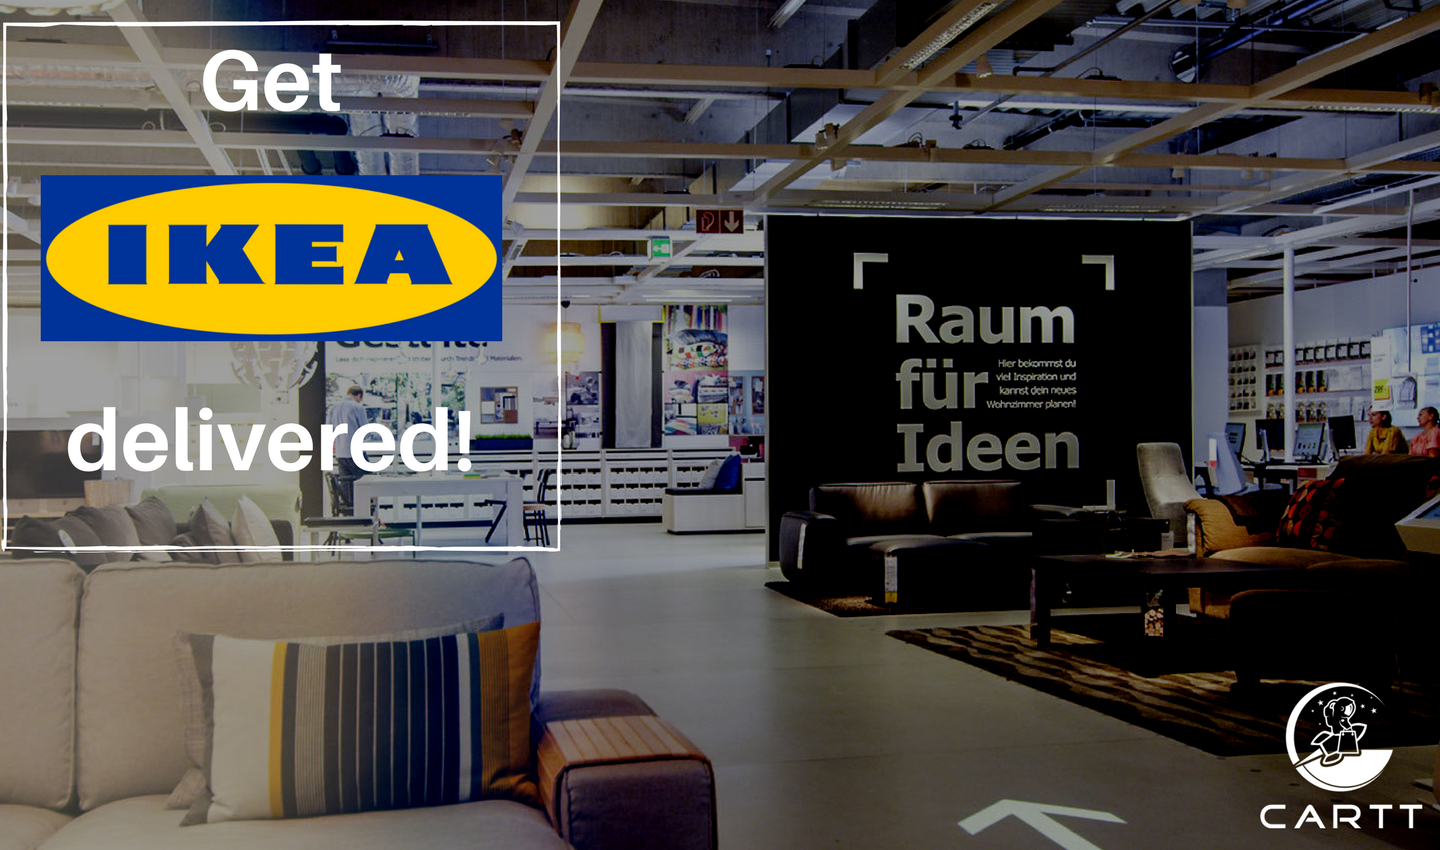 Road Trip Cartt Makes Ikea Delivery Affordable Carttdelivery